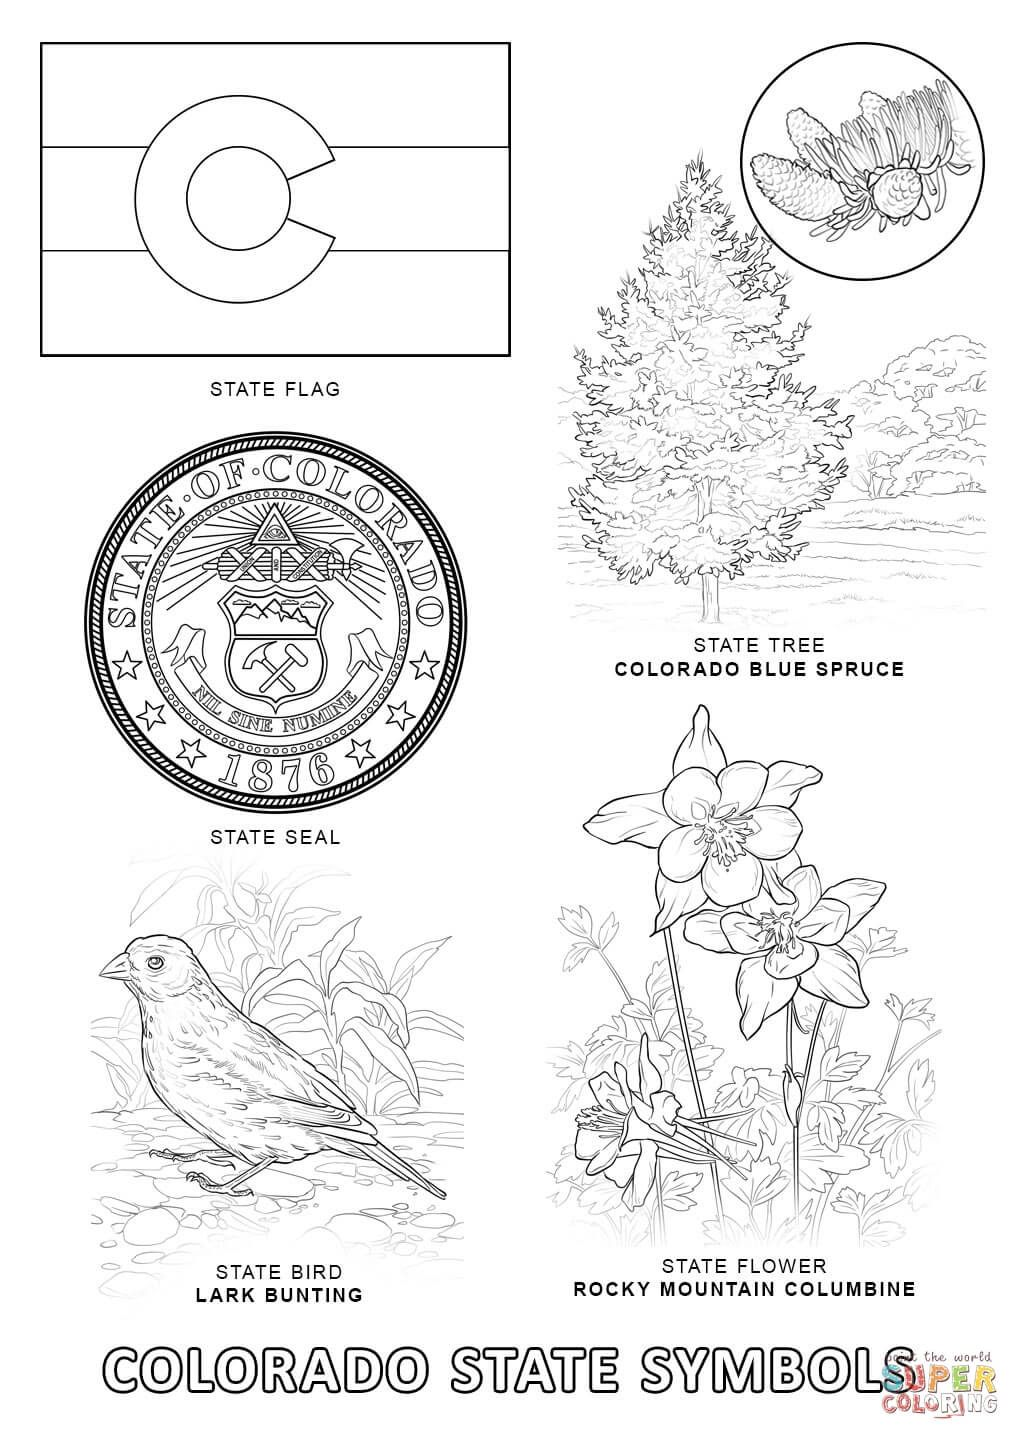 Colorado State Symbols Super Coloring Free Printable Coloring